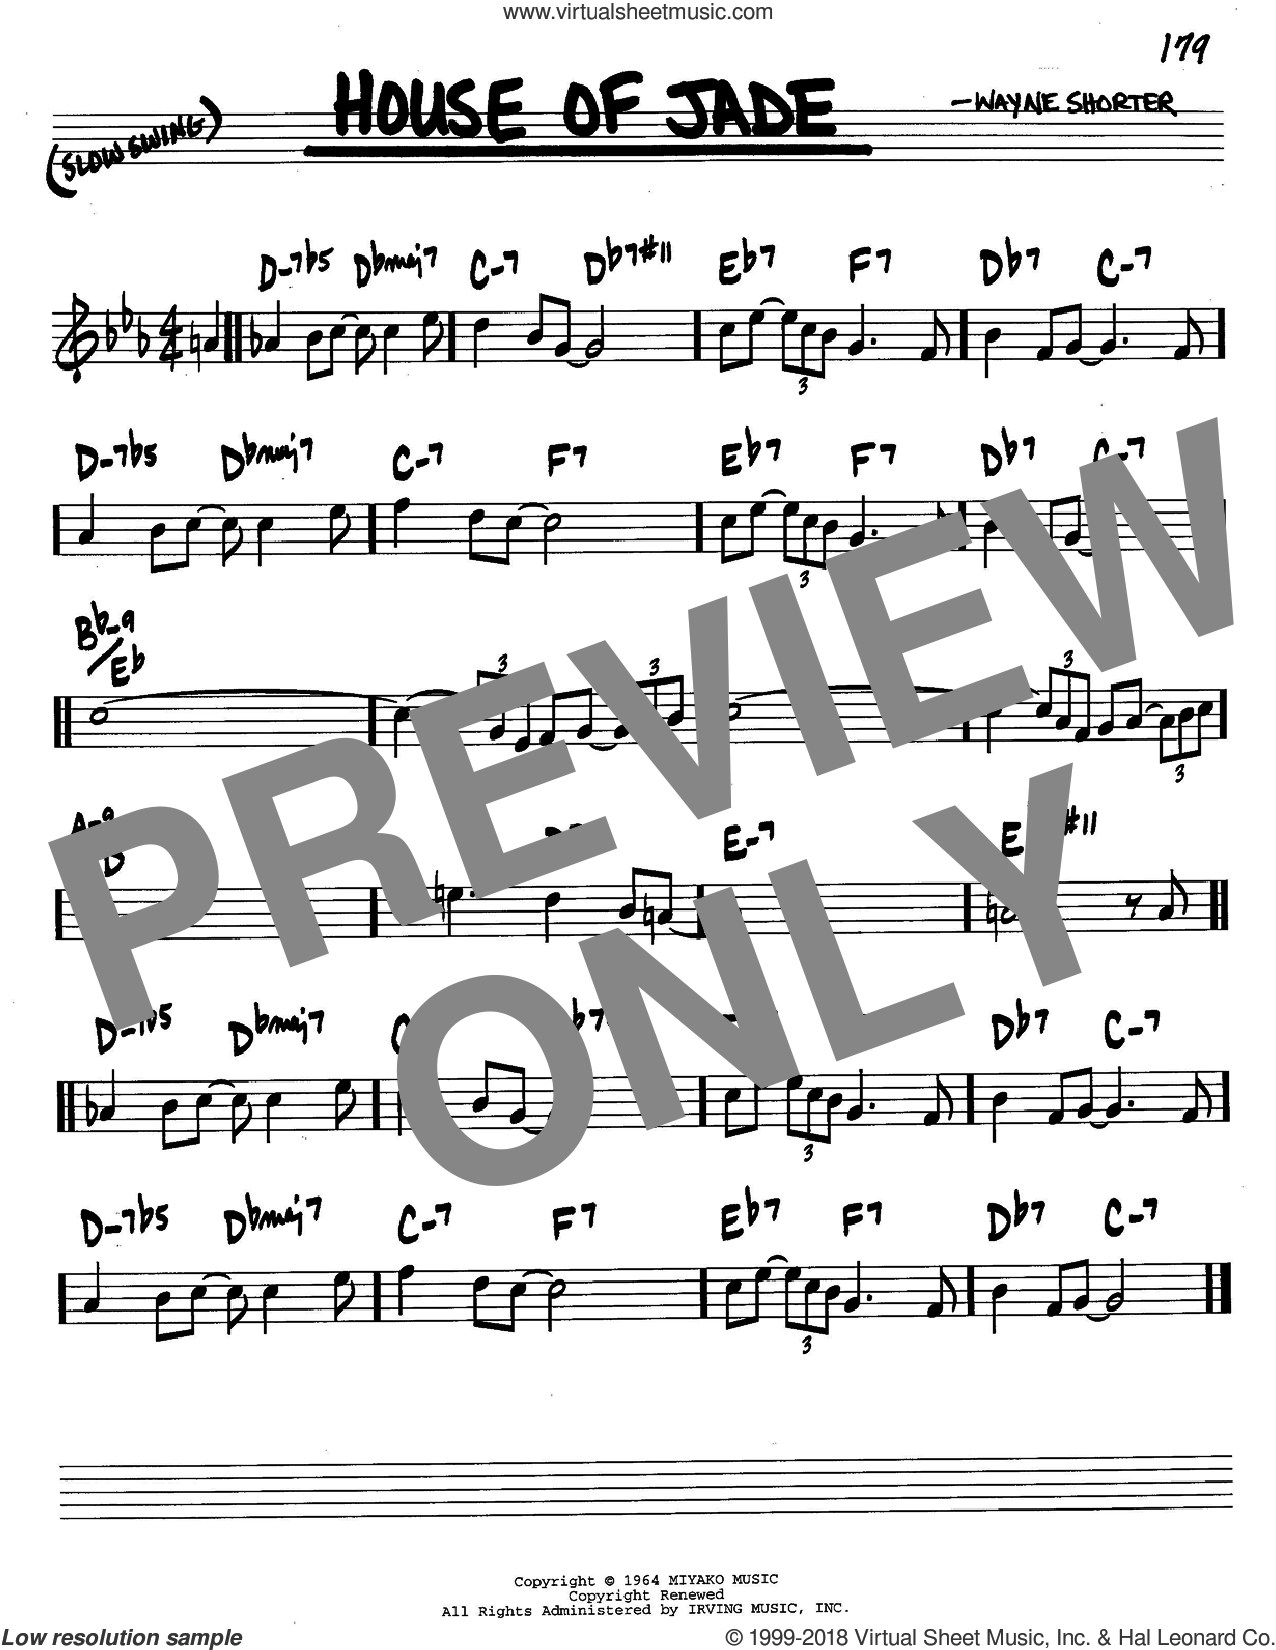 House Of Jade sheet music for voice and other instruments (C) by Wayne Shorter